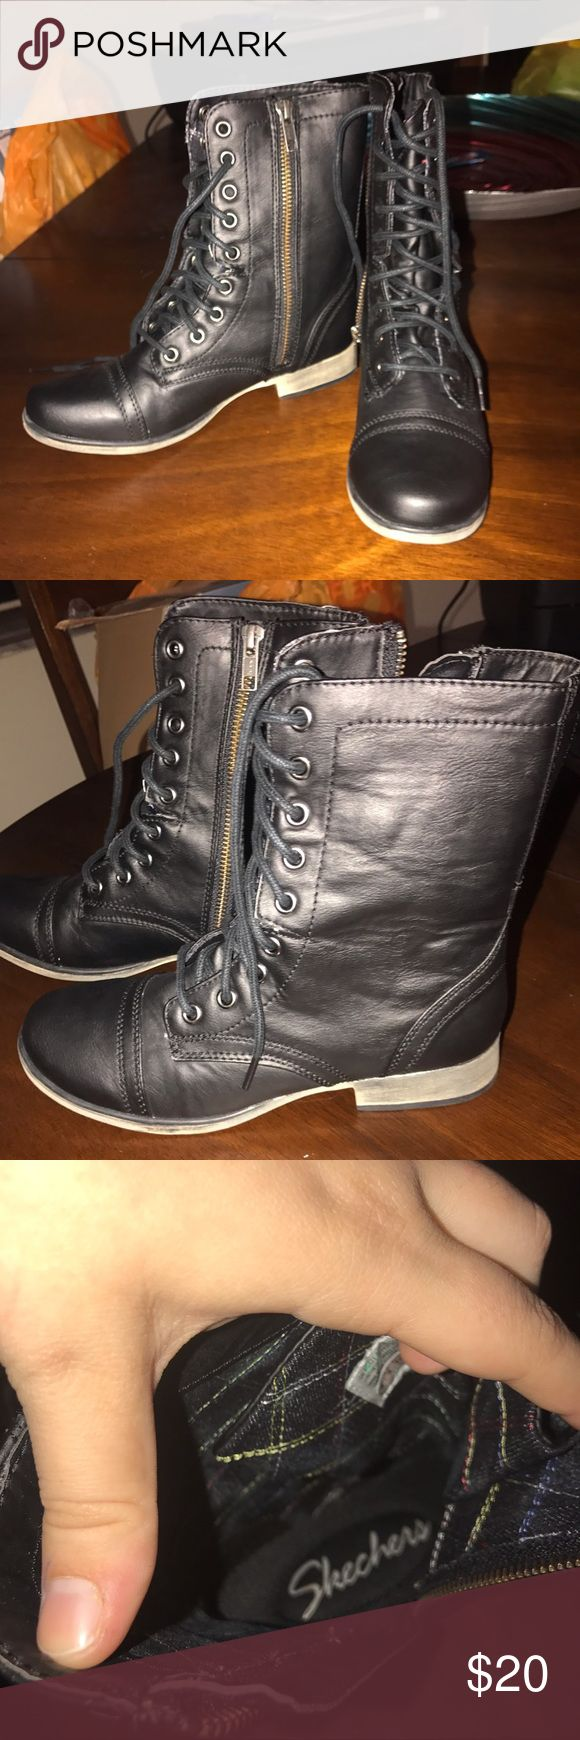 Combat boots size 6 Skechers Skechers. Color: Black size: 6 ladies Skechers Shoes Combat & Moto Boots